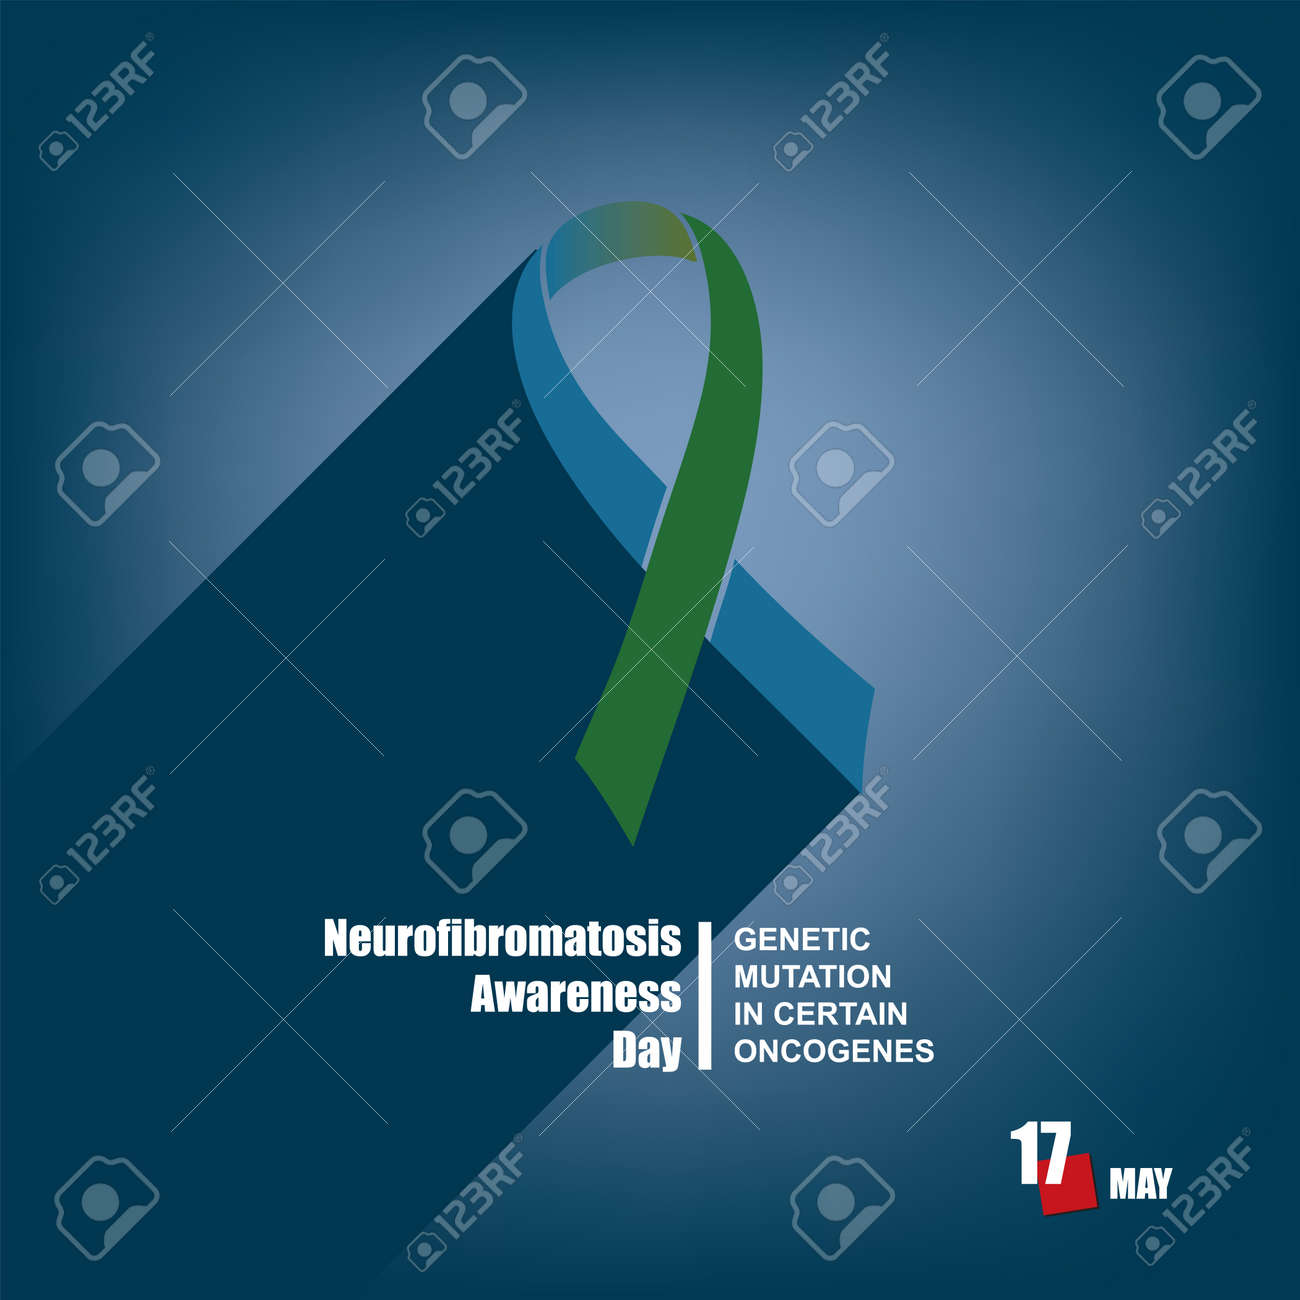 The calendar event is celebrated in may - Neurofibromatosis Awareness Day. Genetic mutation in certain oncogenes - 169061389